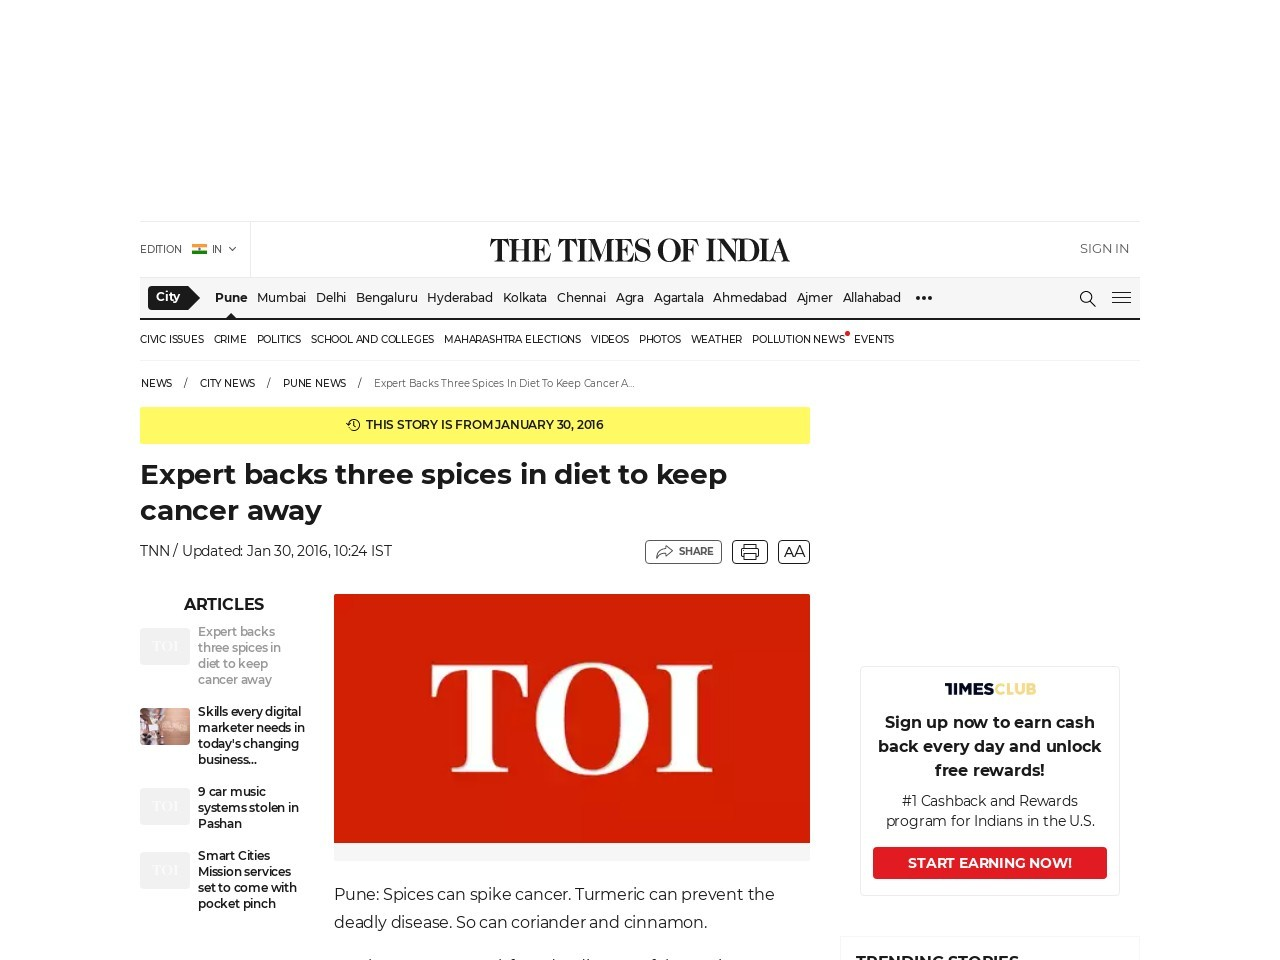 Expert backs three spices in diet to keep cancer away